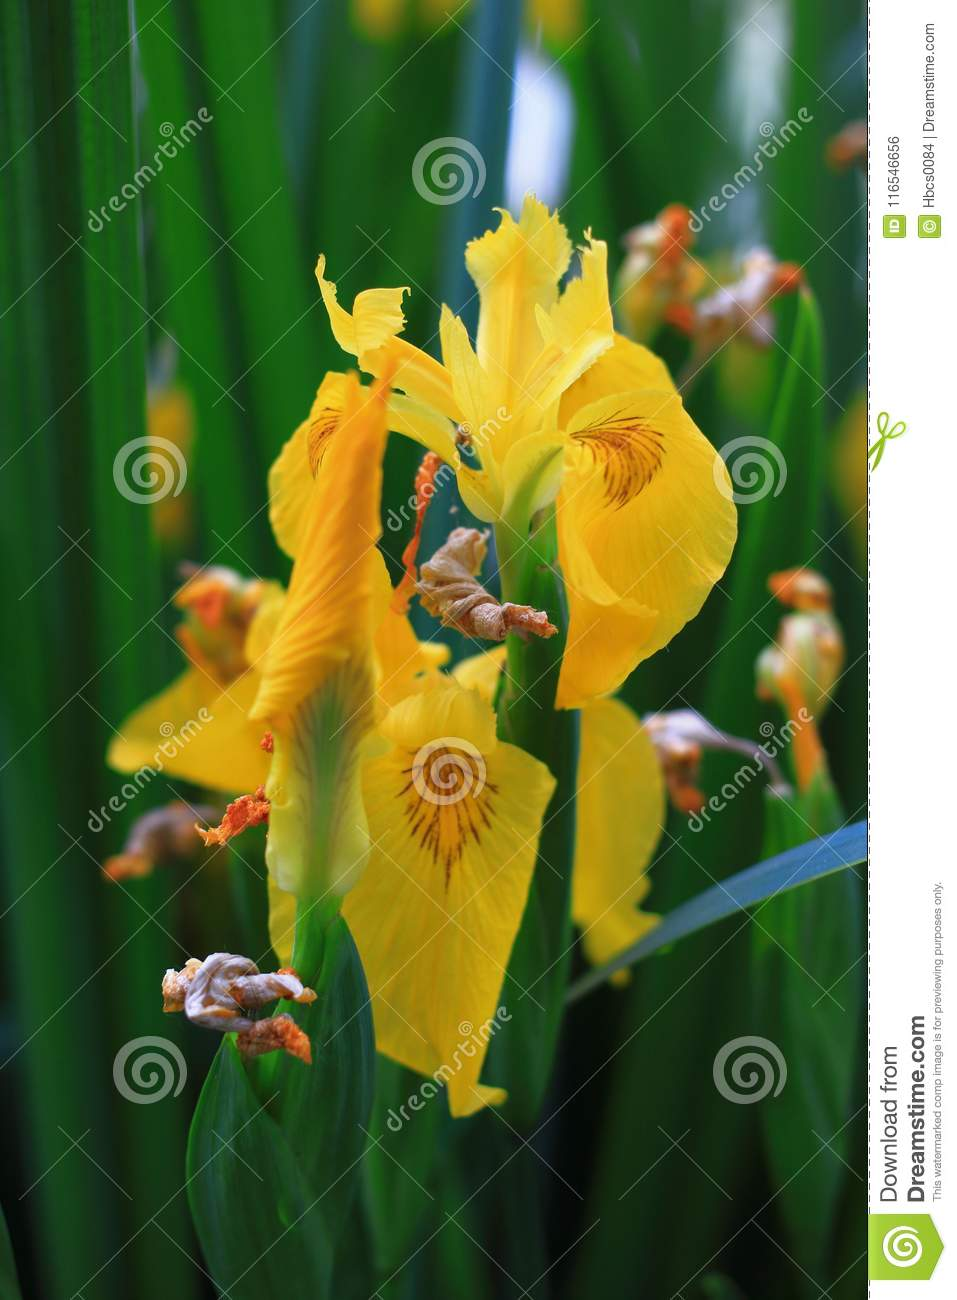 Blooming Yellow Iris Stock Photo Image Of Family Leaf 116546656